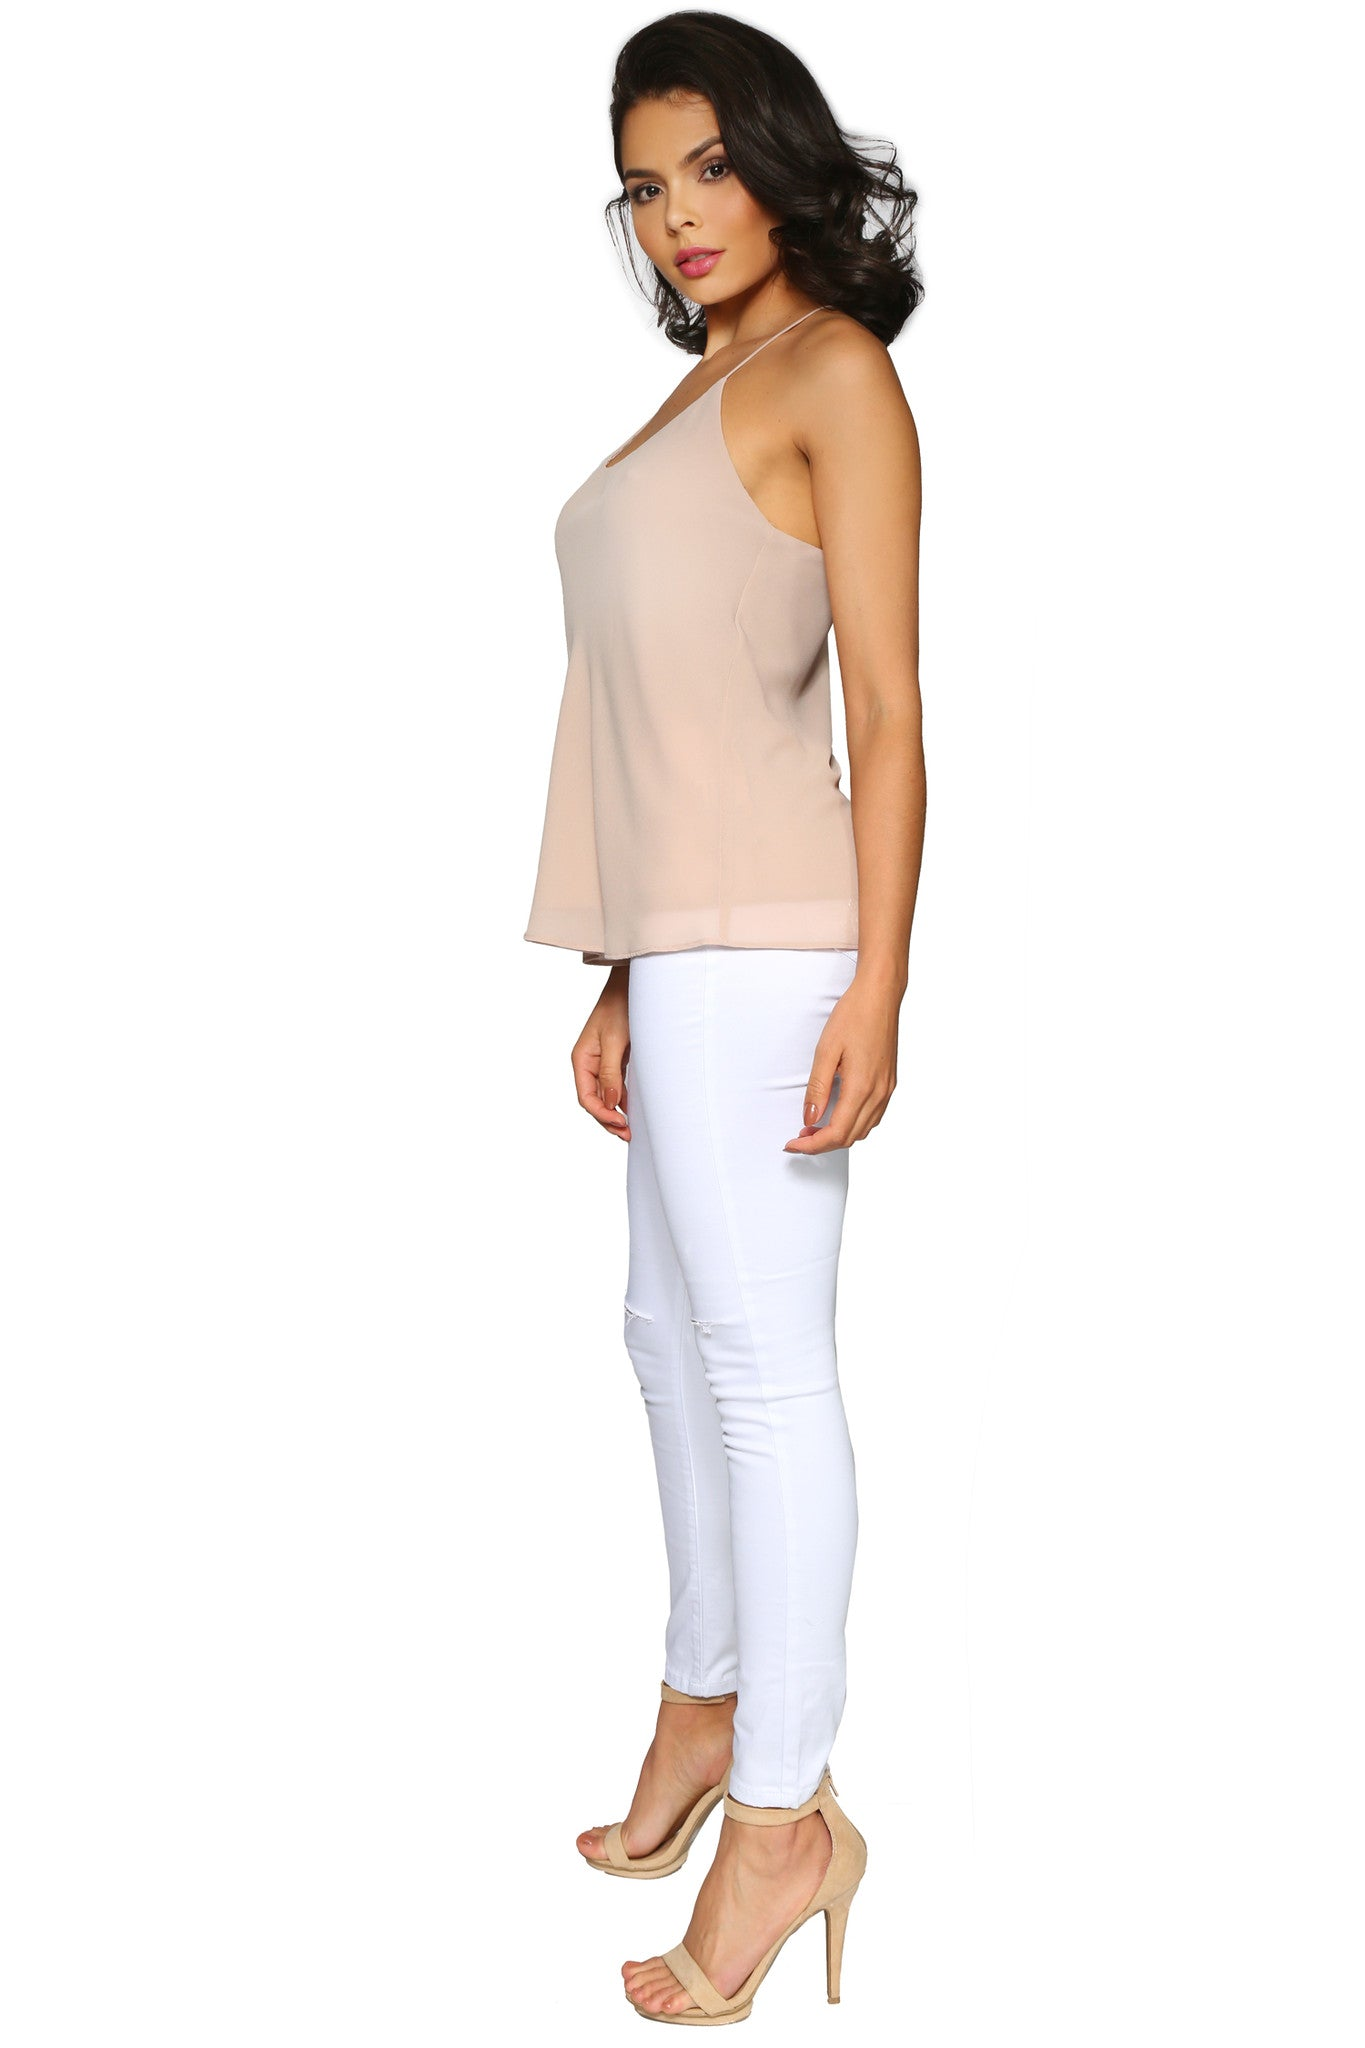 KATE CAMISOLE TAUPE GLAM ENVY SIDE PROFILE